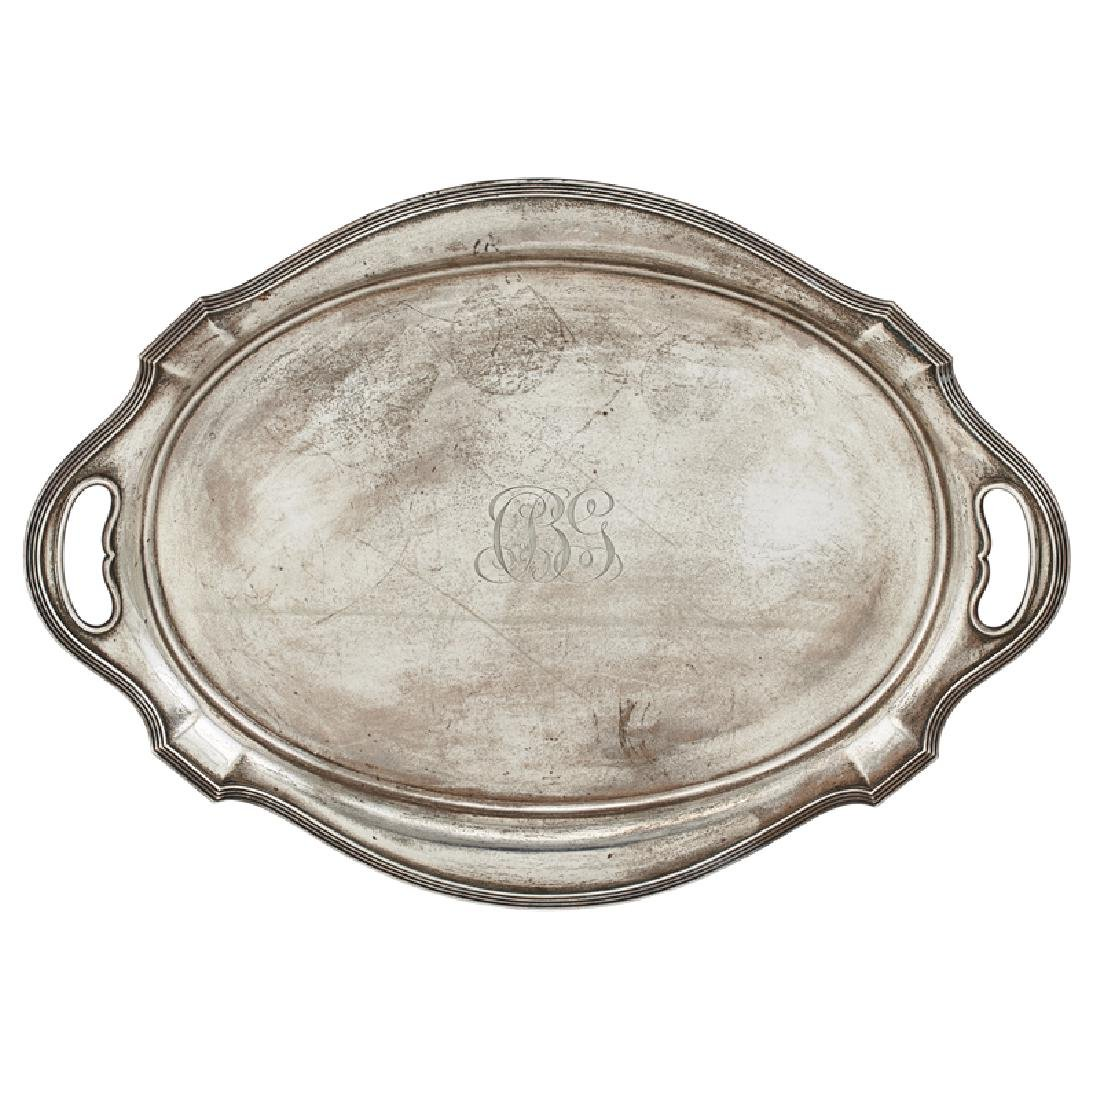 GORHAM STERLING SILVER TEA SET AND TRAY - 2